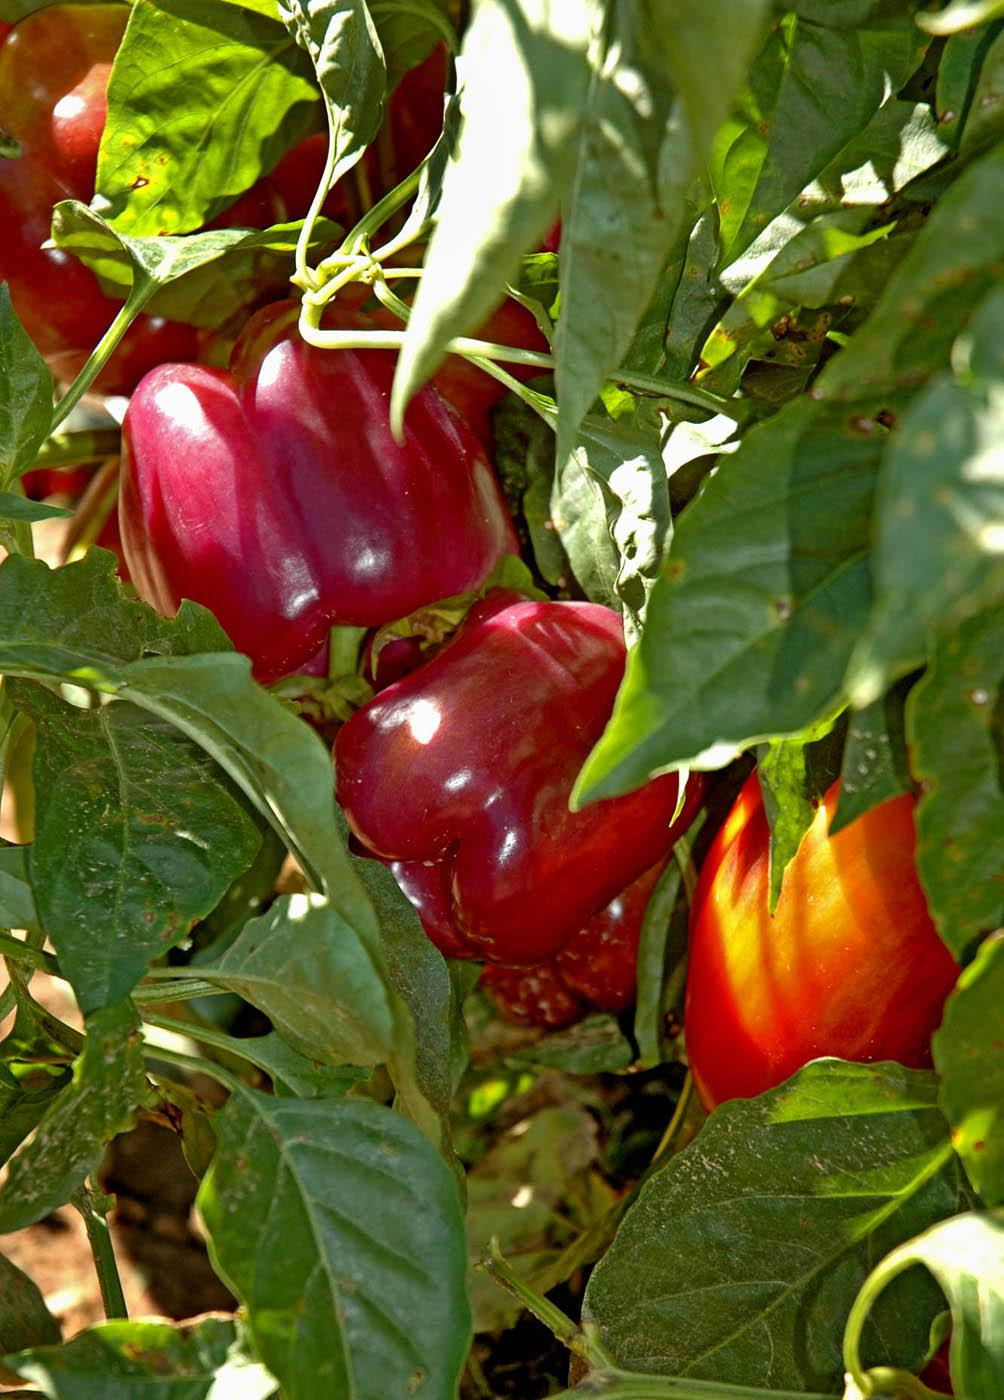 Tequila sweet bell peppers start off green, then change to yellow, orange, deep dark purple and eventually become a tasty sweet red pepper. Suitable for harvest in any color, these Mississippi Medallion award-winning peppers add a colorful zest to salads.